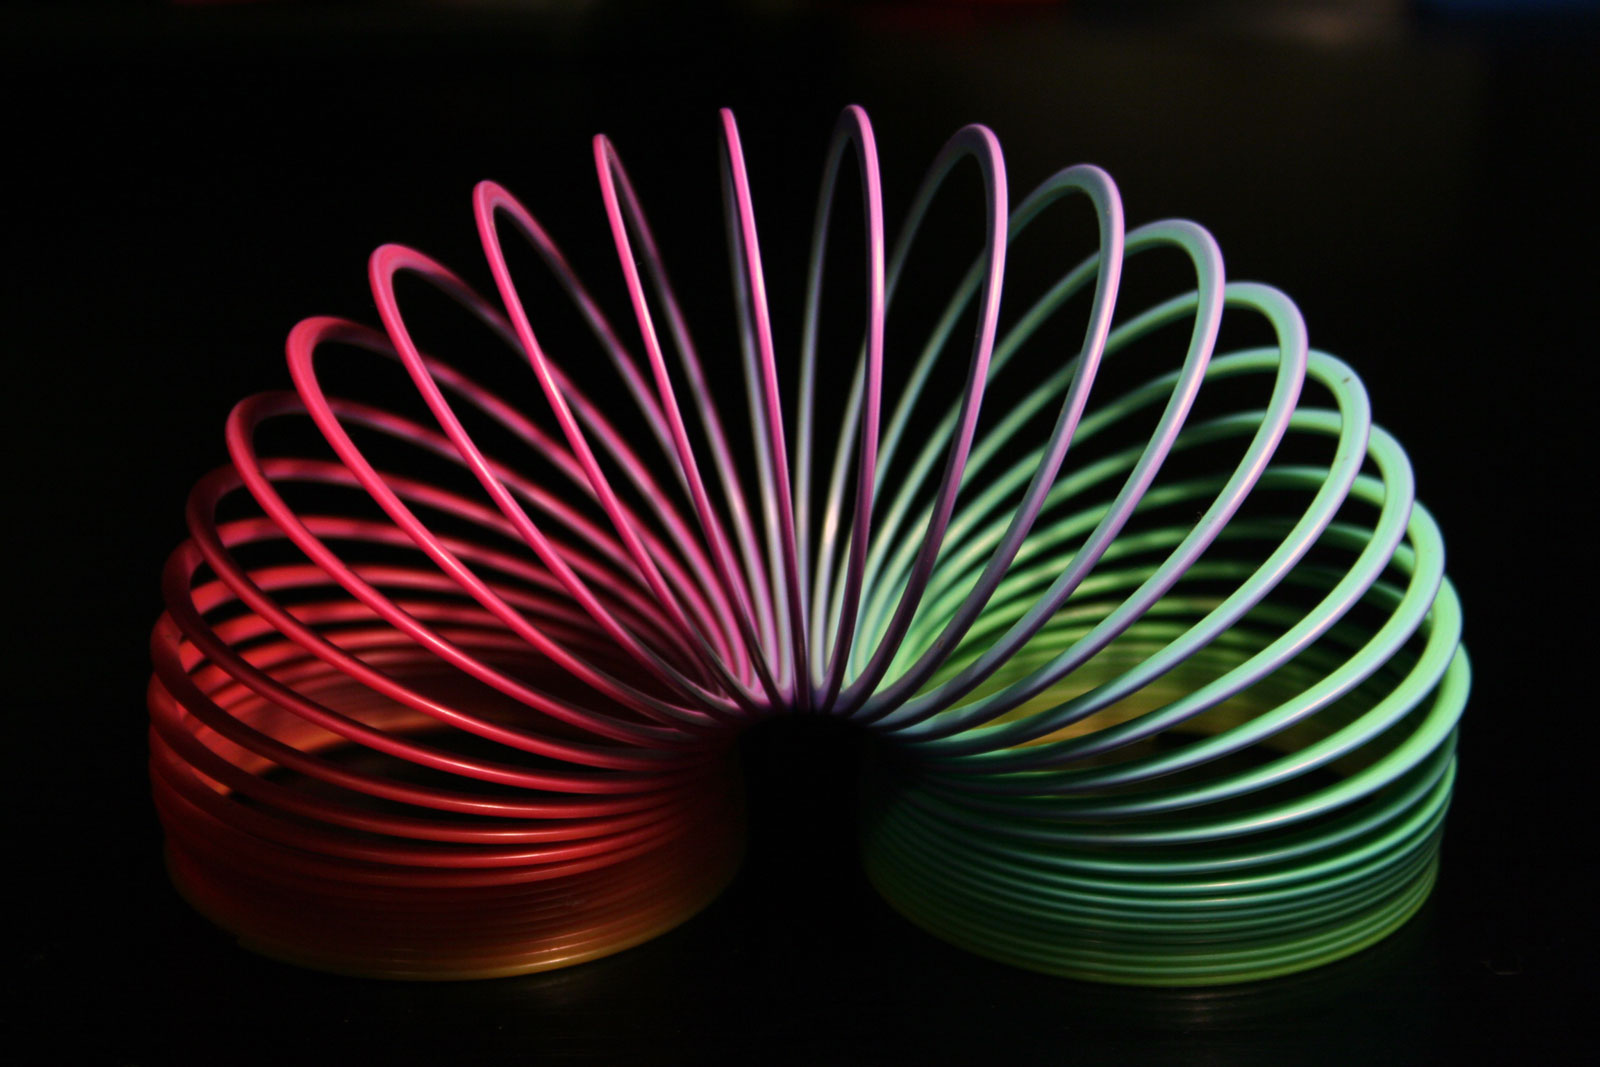 rainbow plastic slinky in arc shape